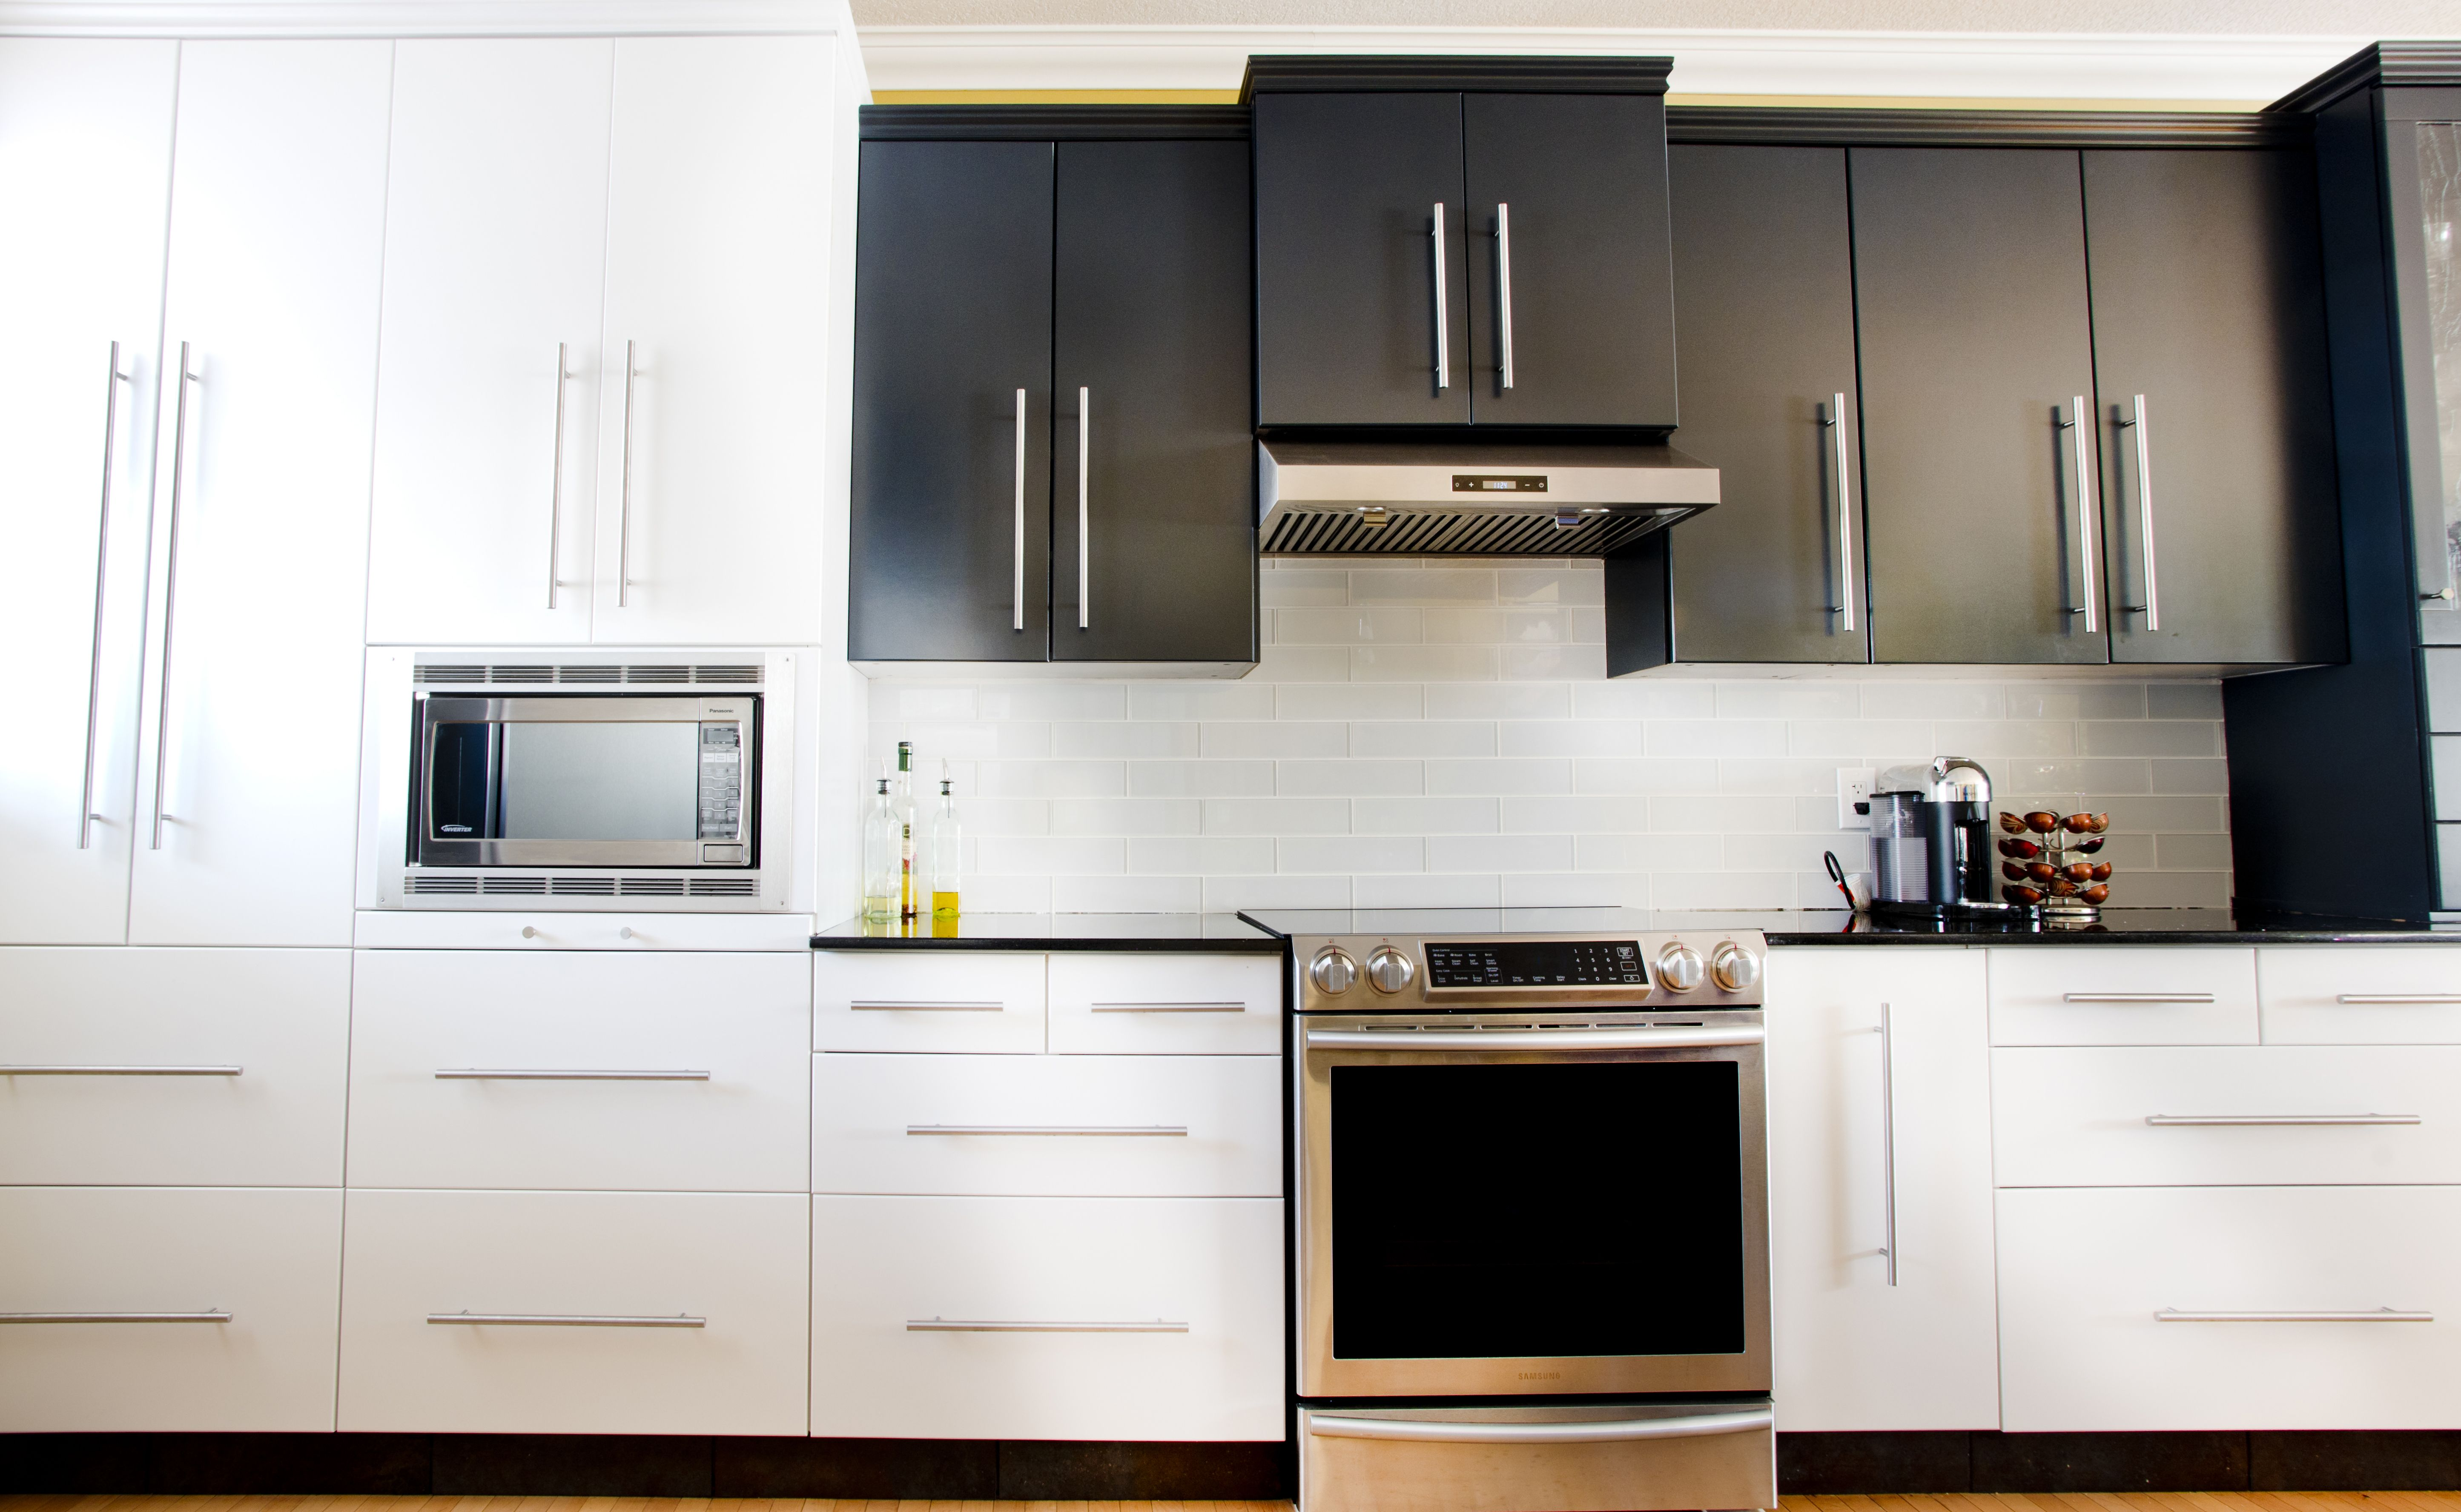 What style of appliance is your favorite? Do you like gray